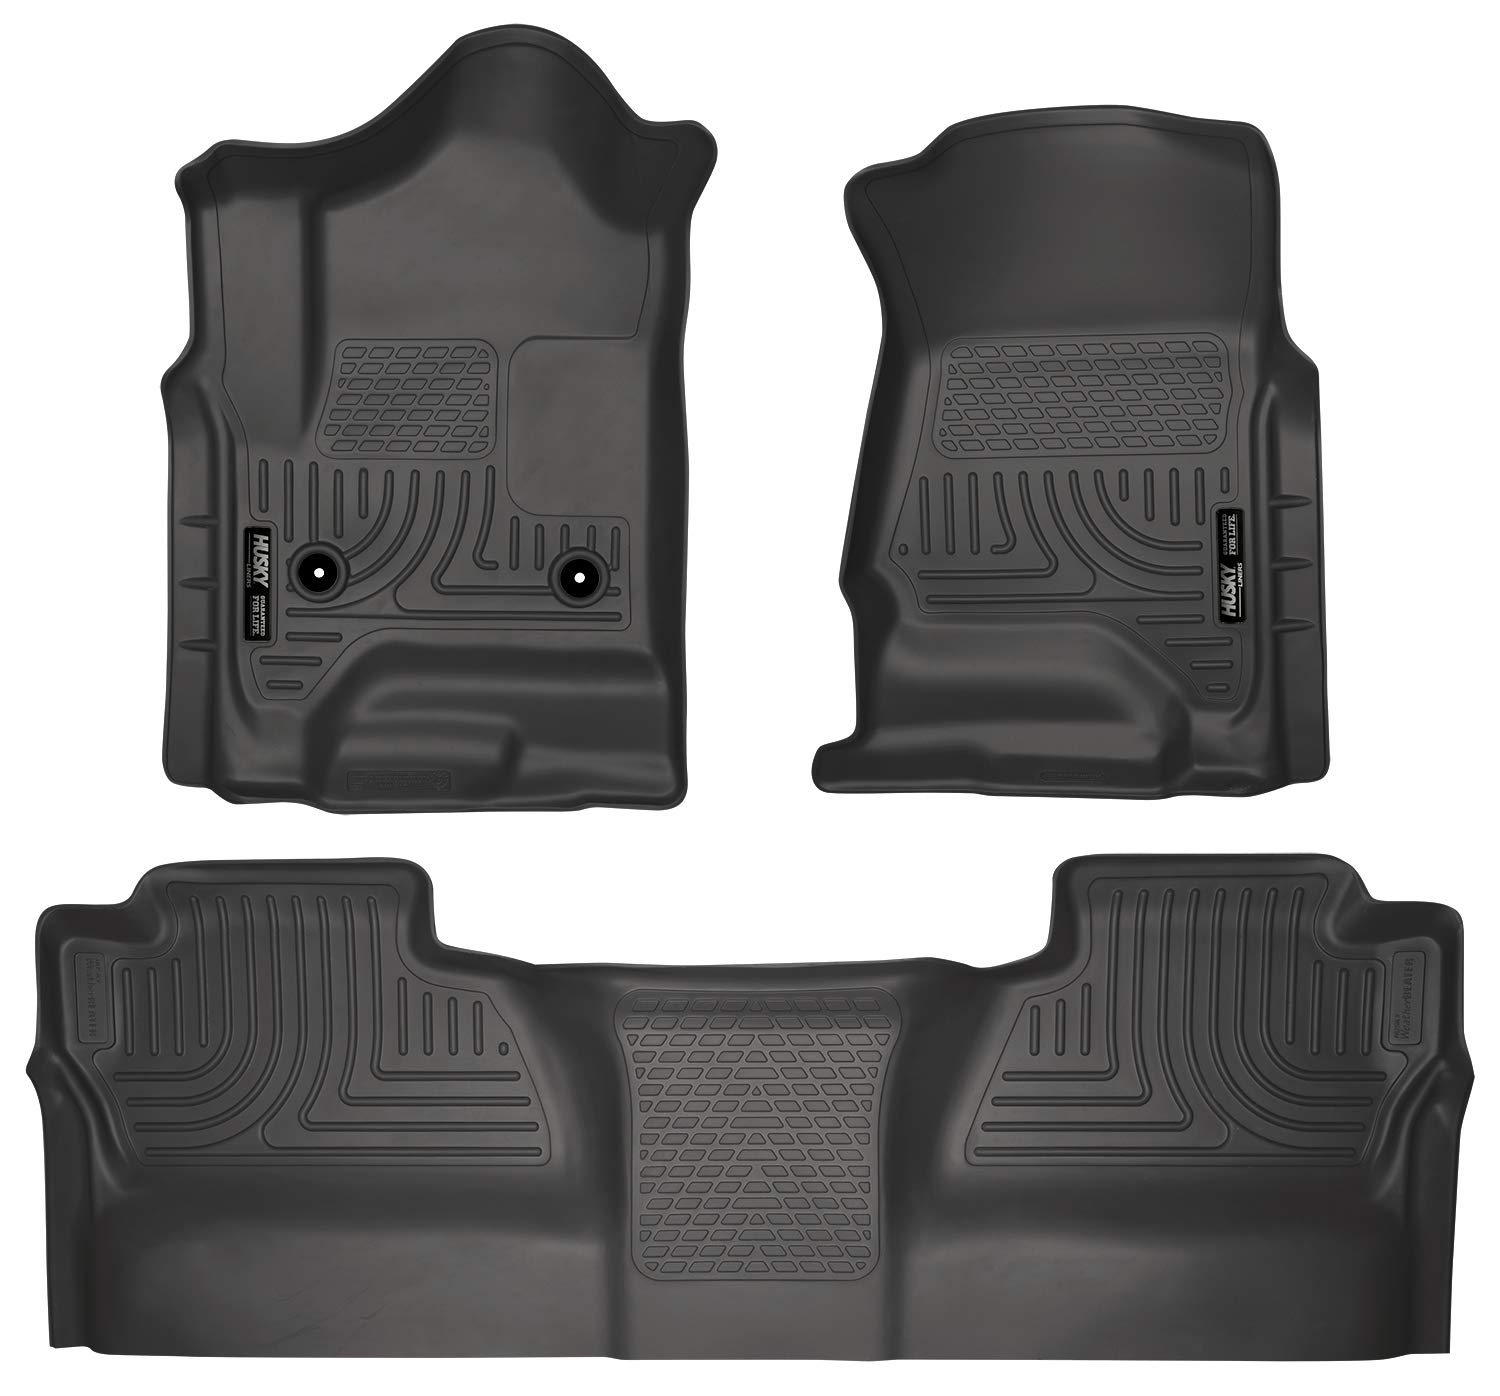 Husky Liners 98231 Black Weatherbeater Front & 2nd Seat Floor Liners Fits 2014-2018 Chevrolet-GMC Silverado/Sierra 1500 Crew Cab, 2015-2019 Chevrolet-GMC Silverado/Sierra 2500/3500 HD Crew Cab by Husky Liners